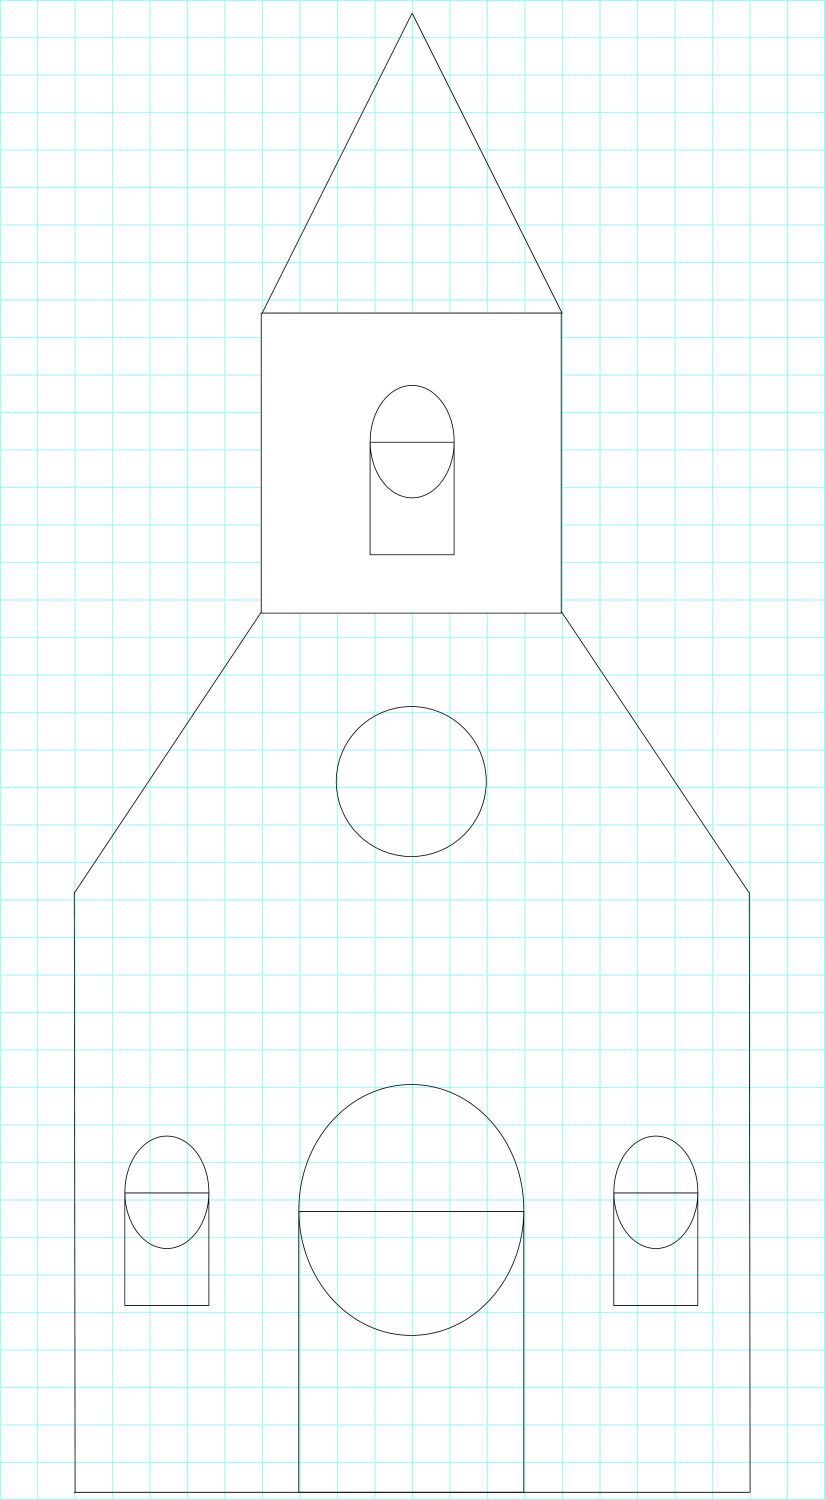 gingerbread house template church  Pattern for a gingerbread church! | Gingerbread house ...